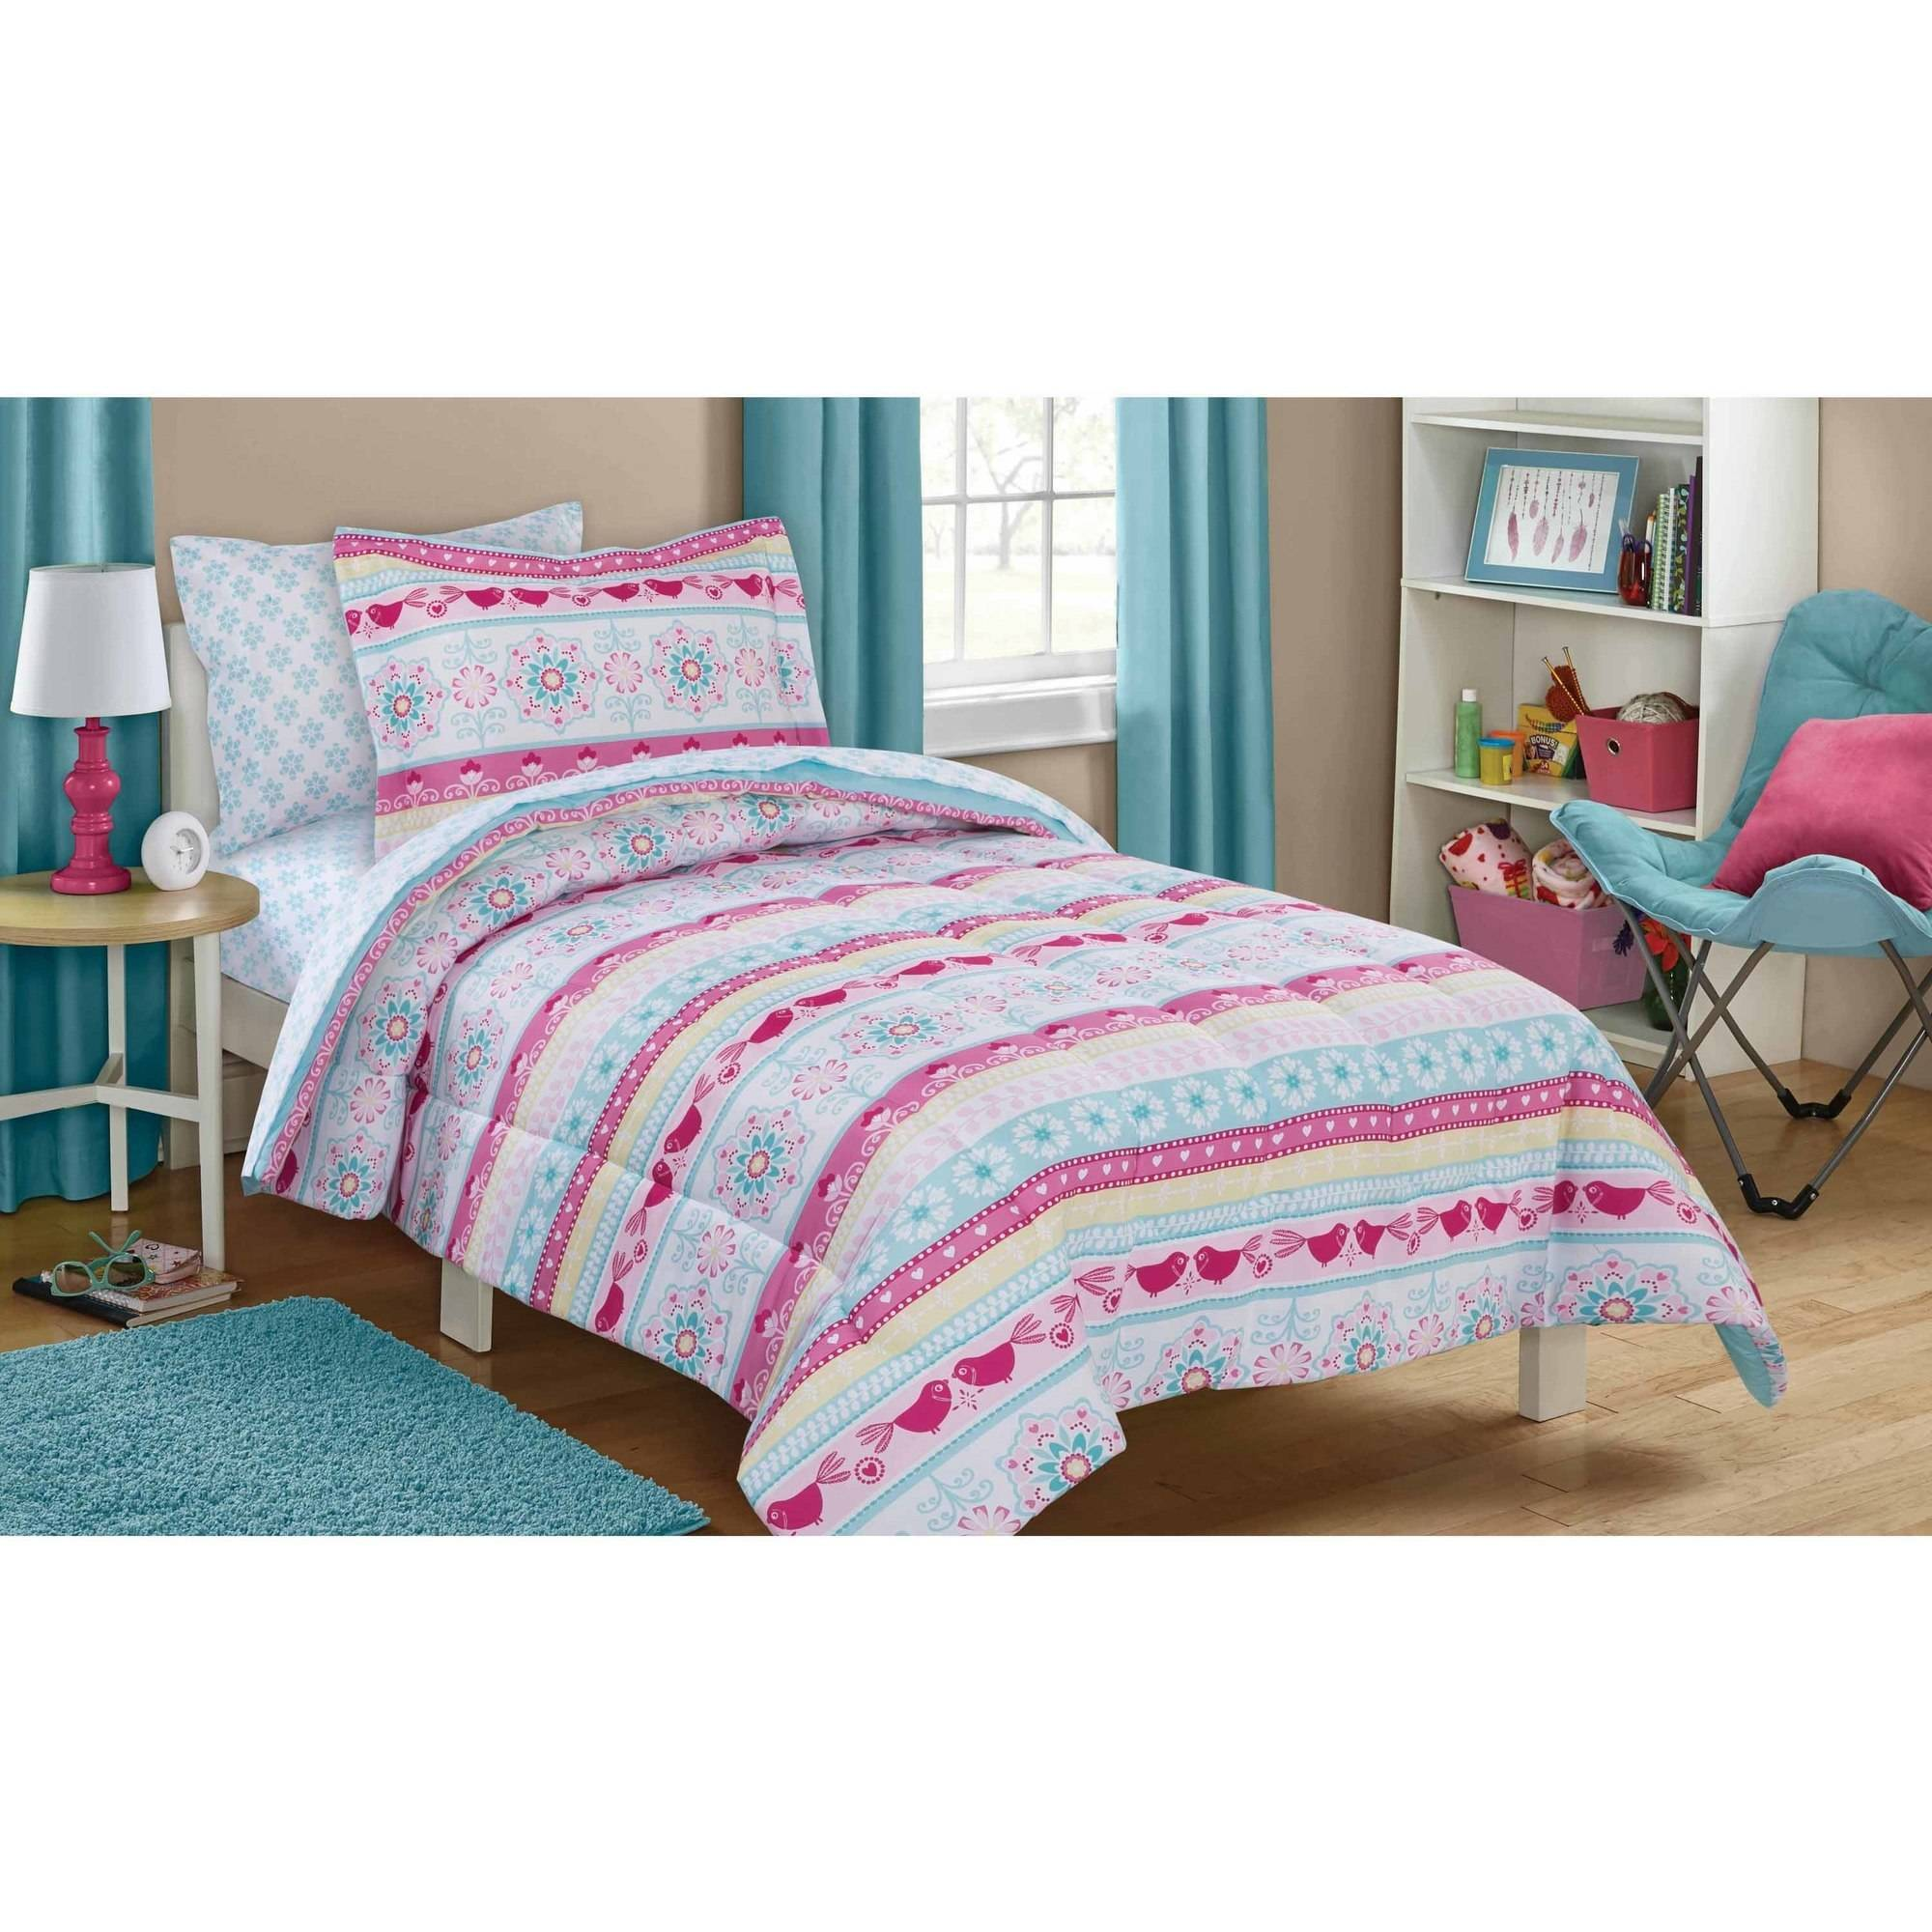 Mainstays Kids Folkloric Stripe Bed in a Bag Bedding Set